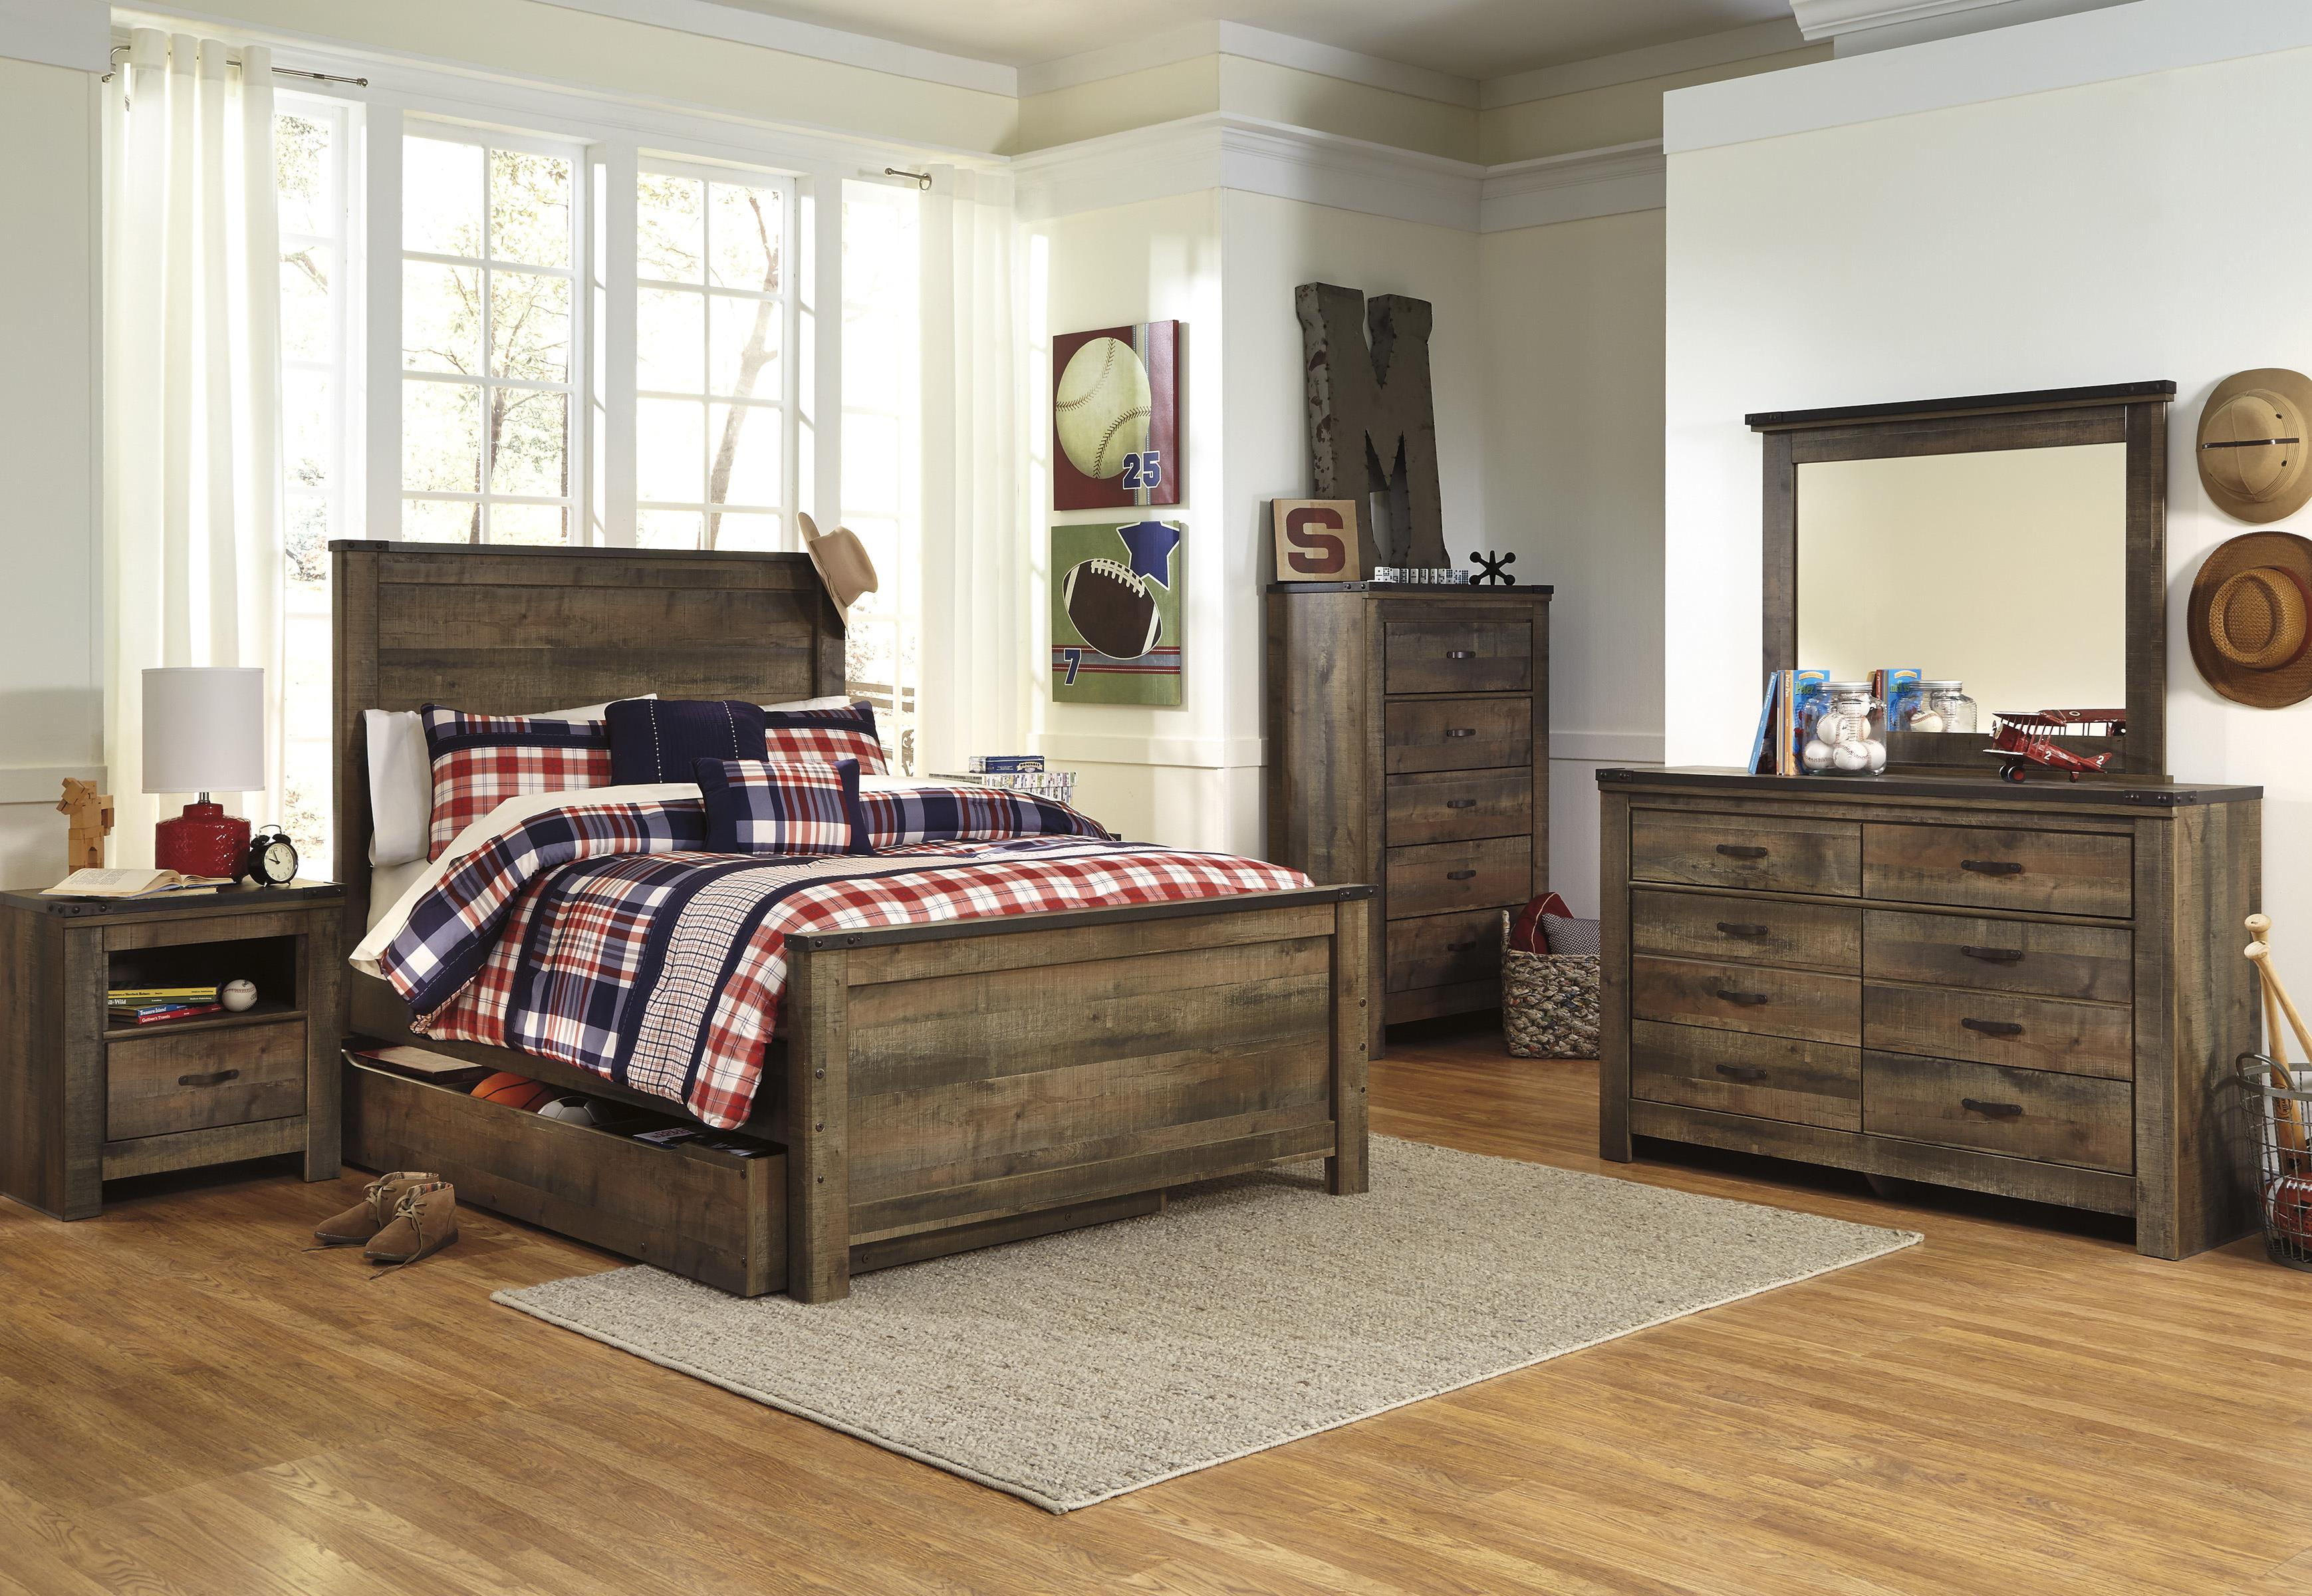 Ashley rustic bedroom furniture - Signature Design By Ashley Trinell Rustic Look Full Bookcase Bed With Under Bed Storage Pilgrim Furniture City Bookcase Beds